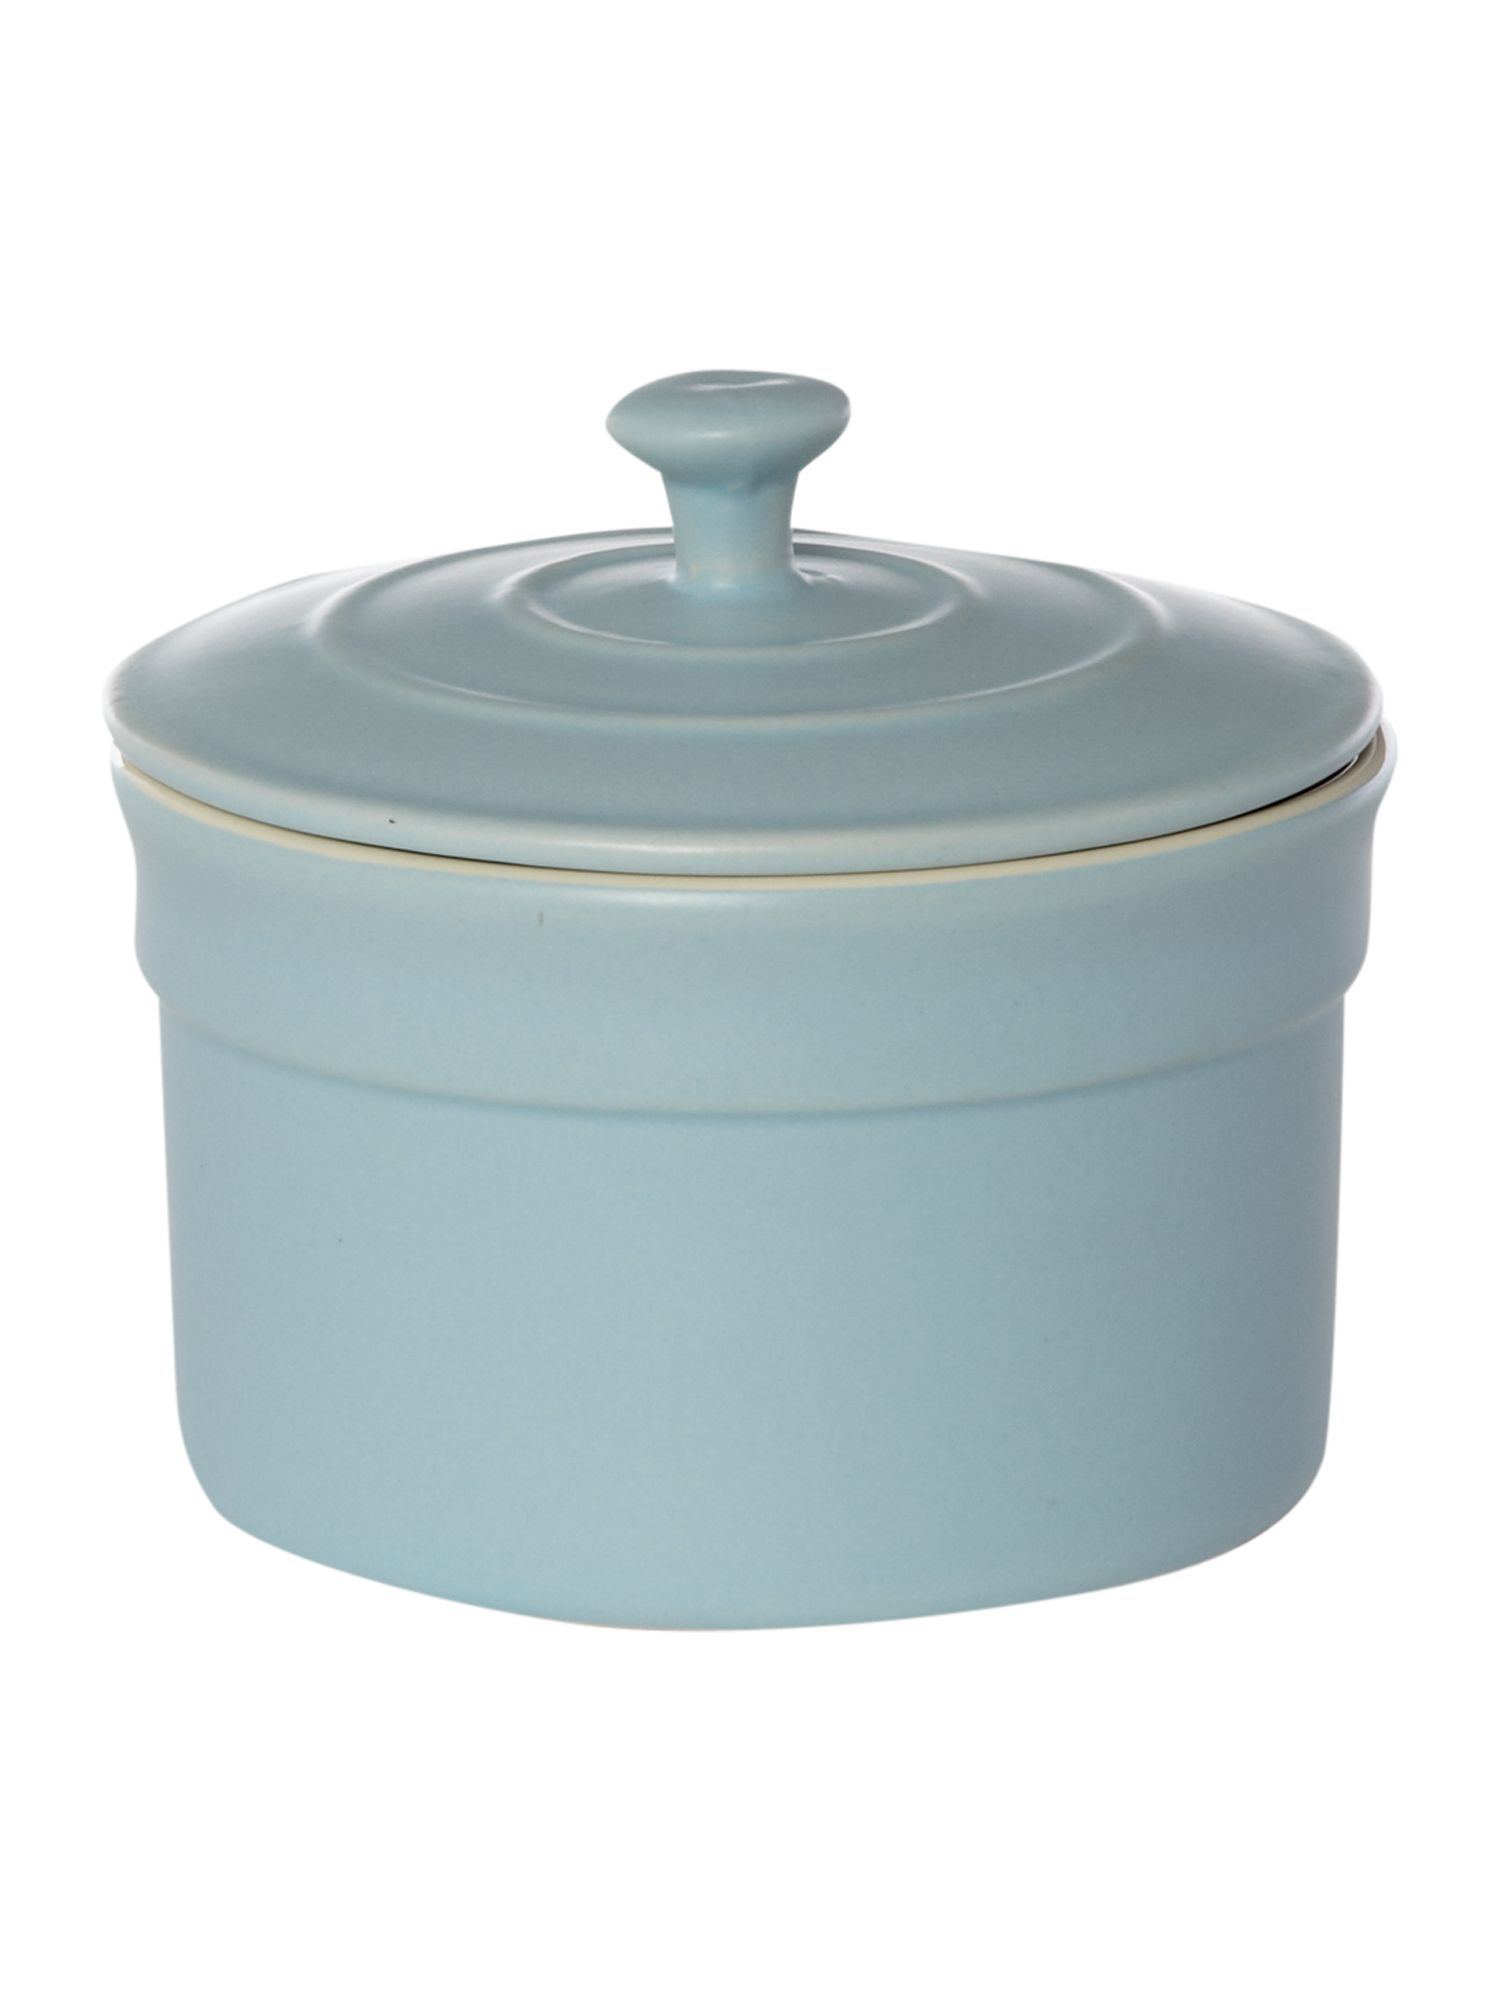 Maison sugar bowl, pale blue